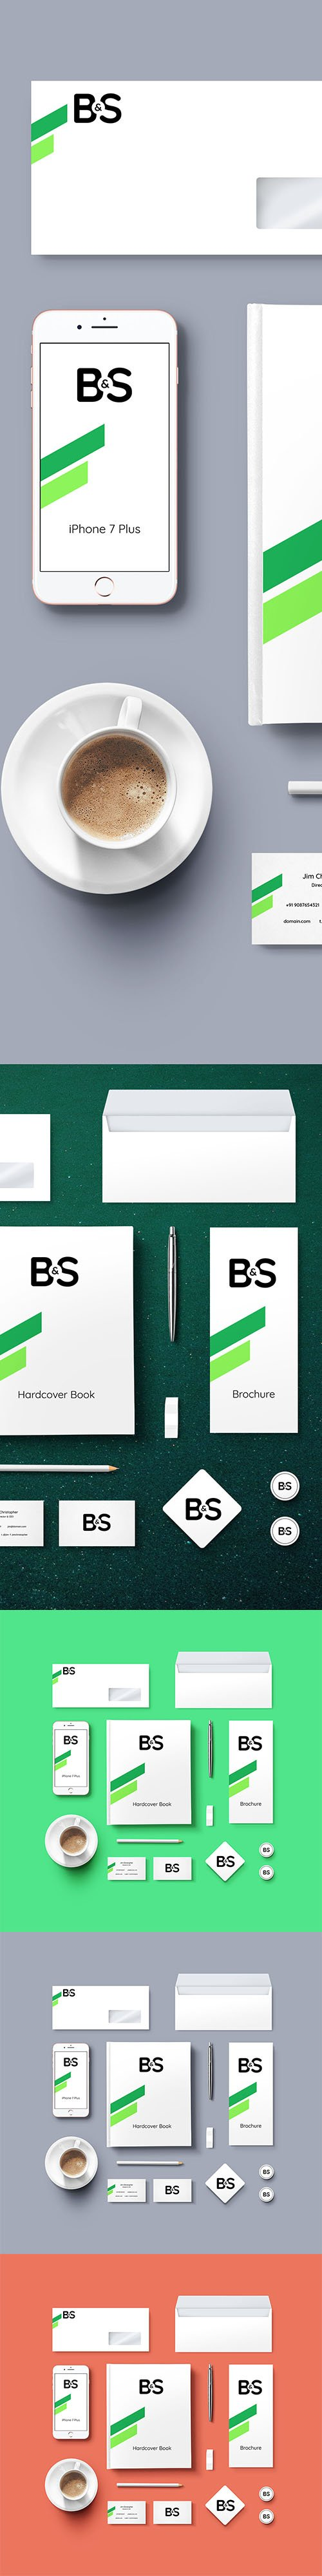 PSD Mock-Up - Branding And Stationery 2016